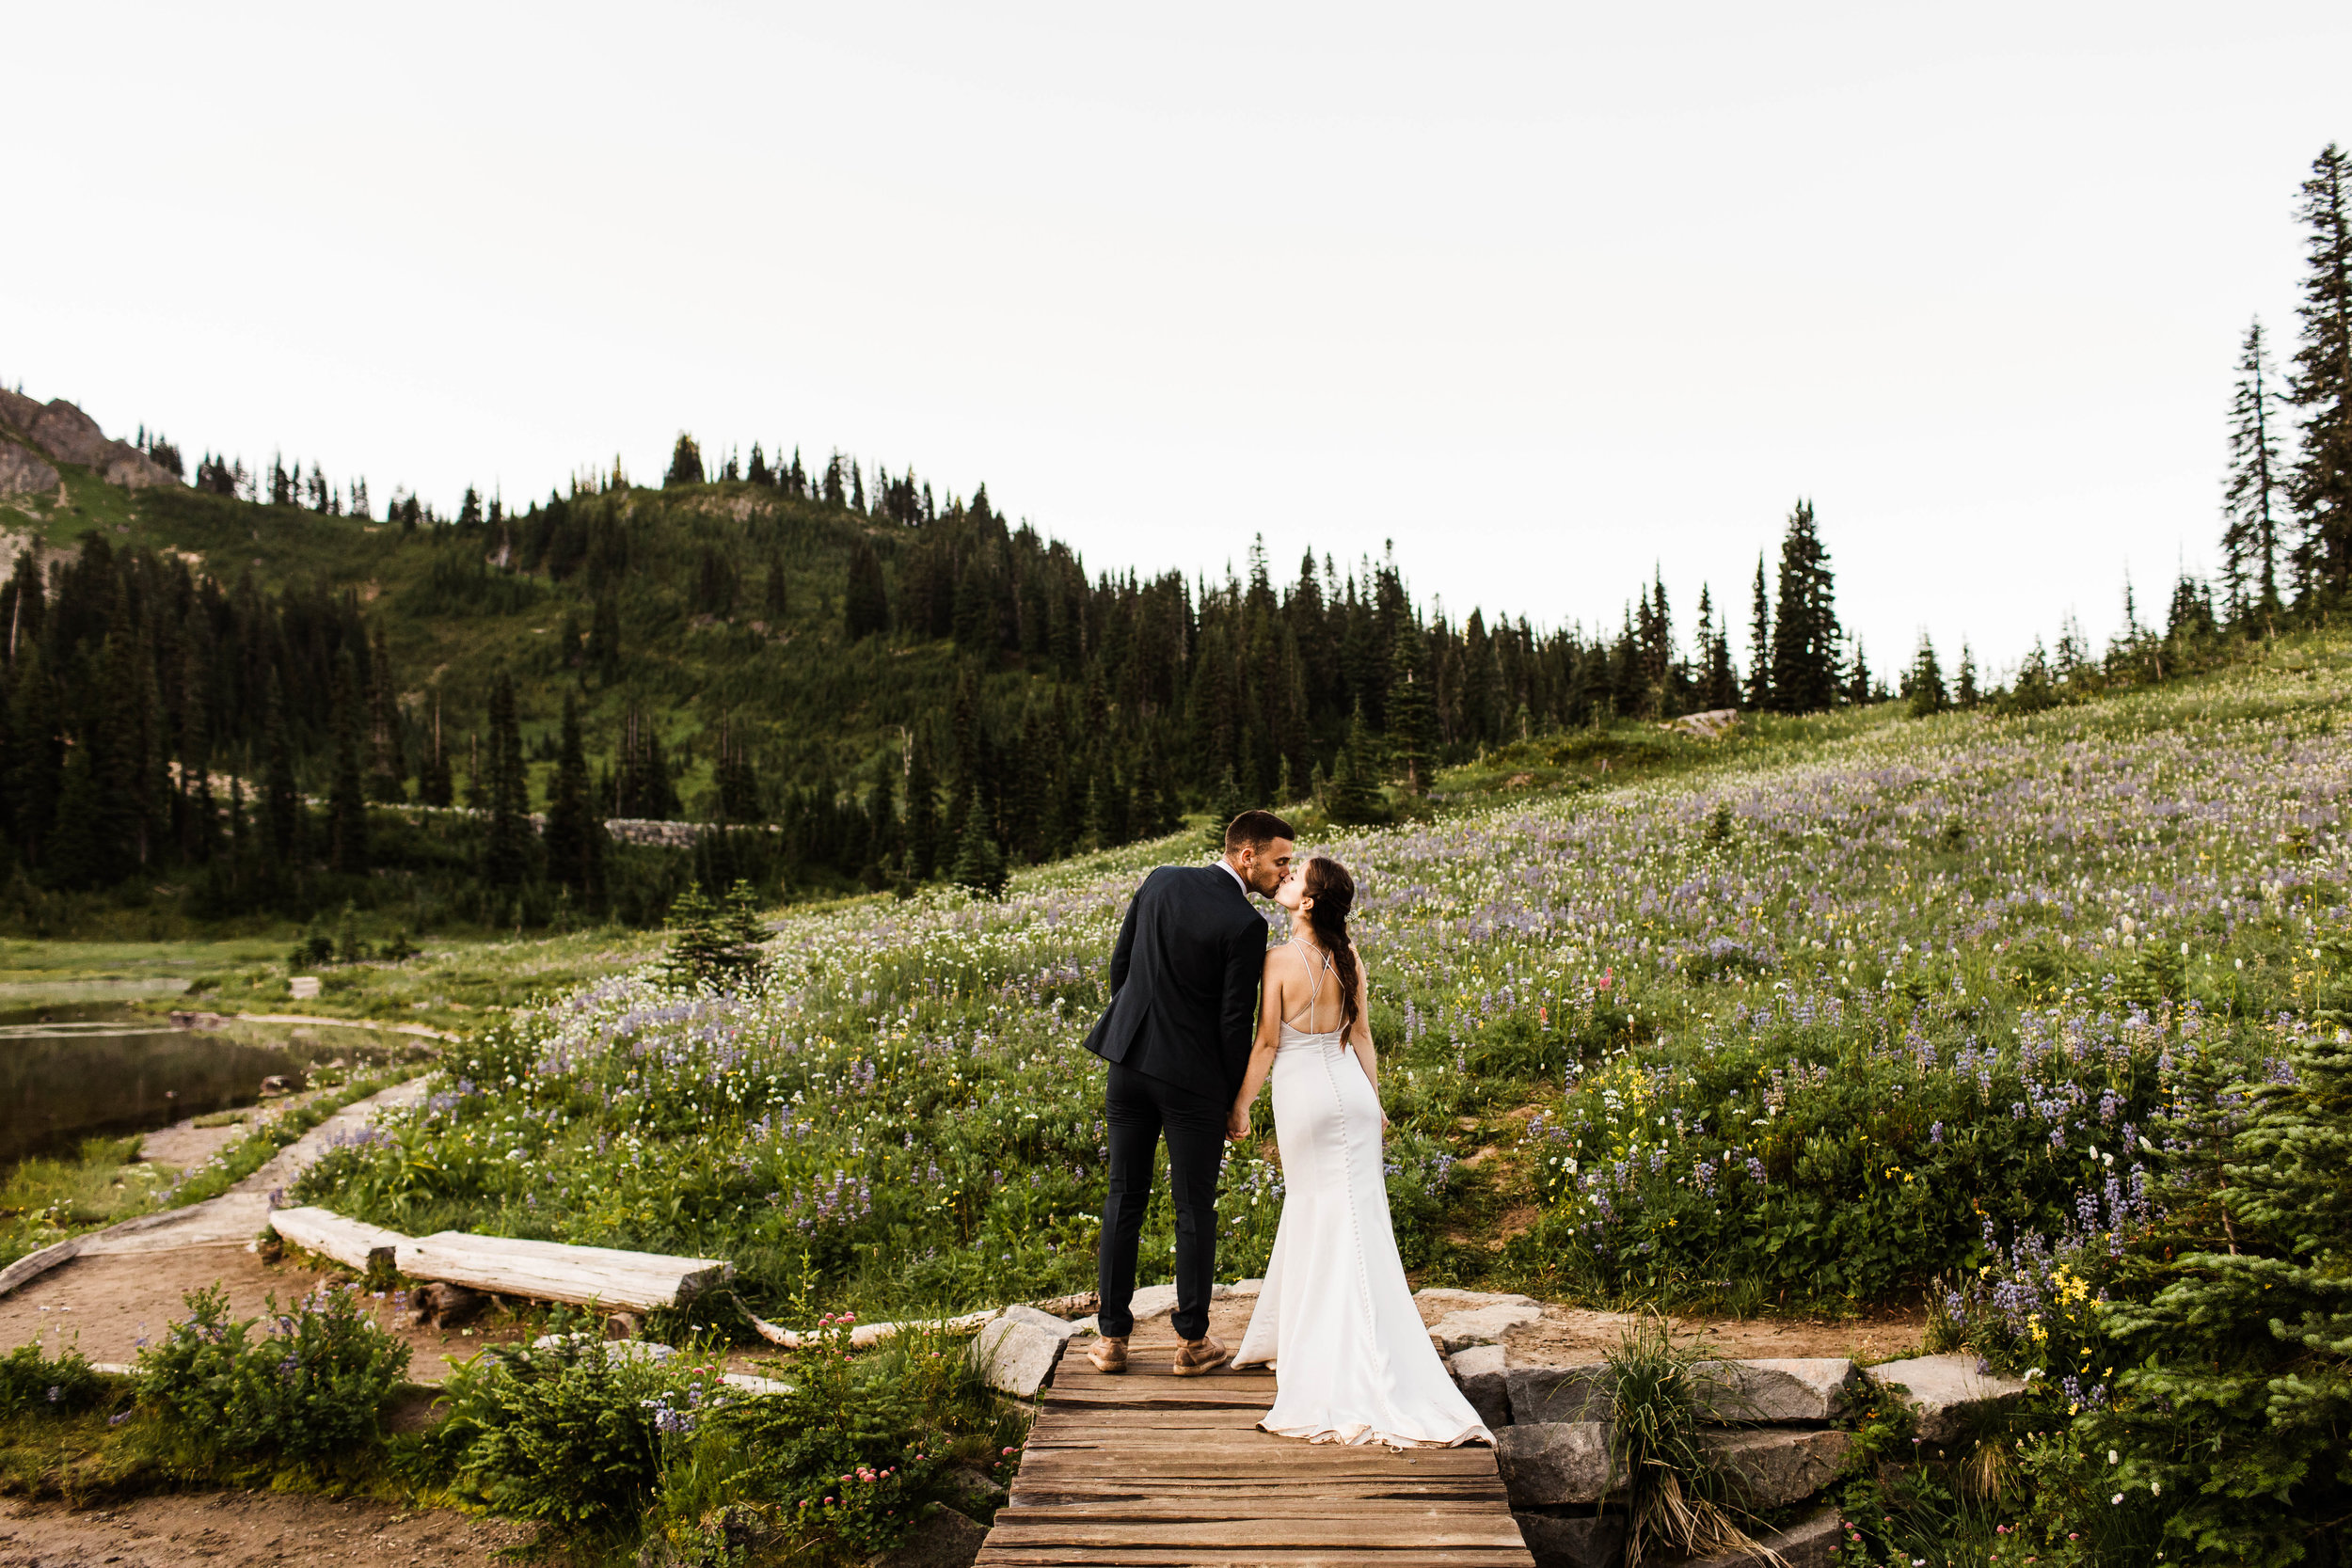 alpine meadow elopement photos in Mount Rainier | national park elopement photographers in Washington state